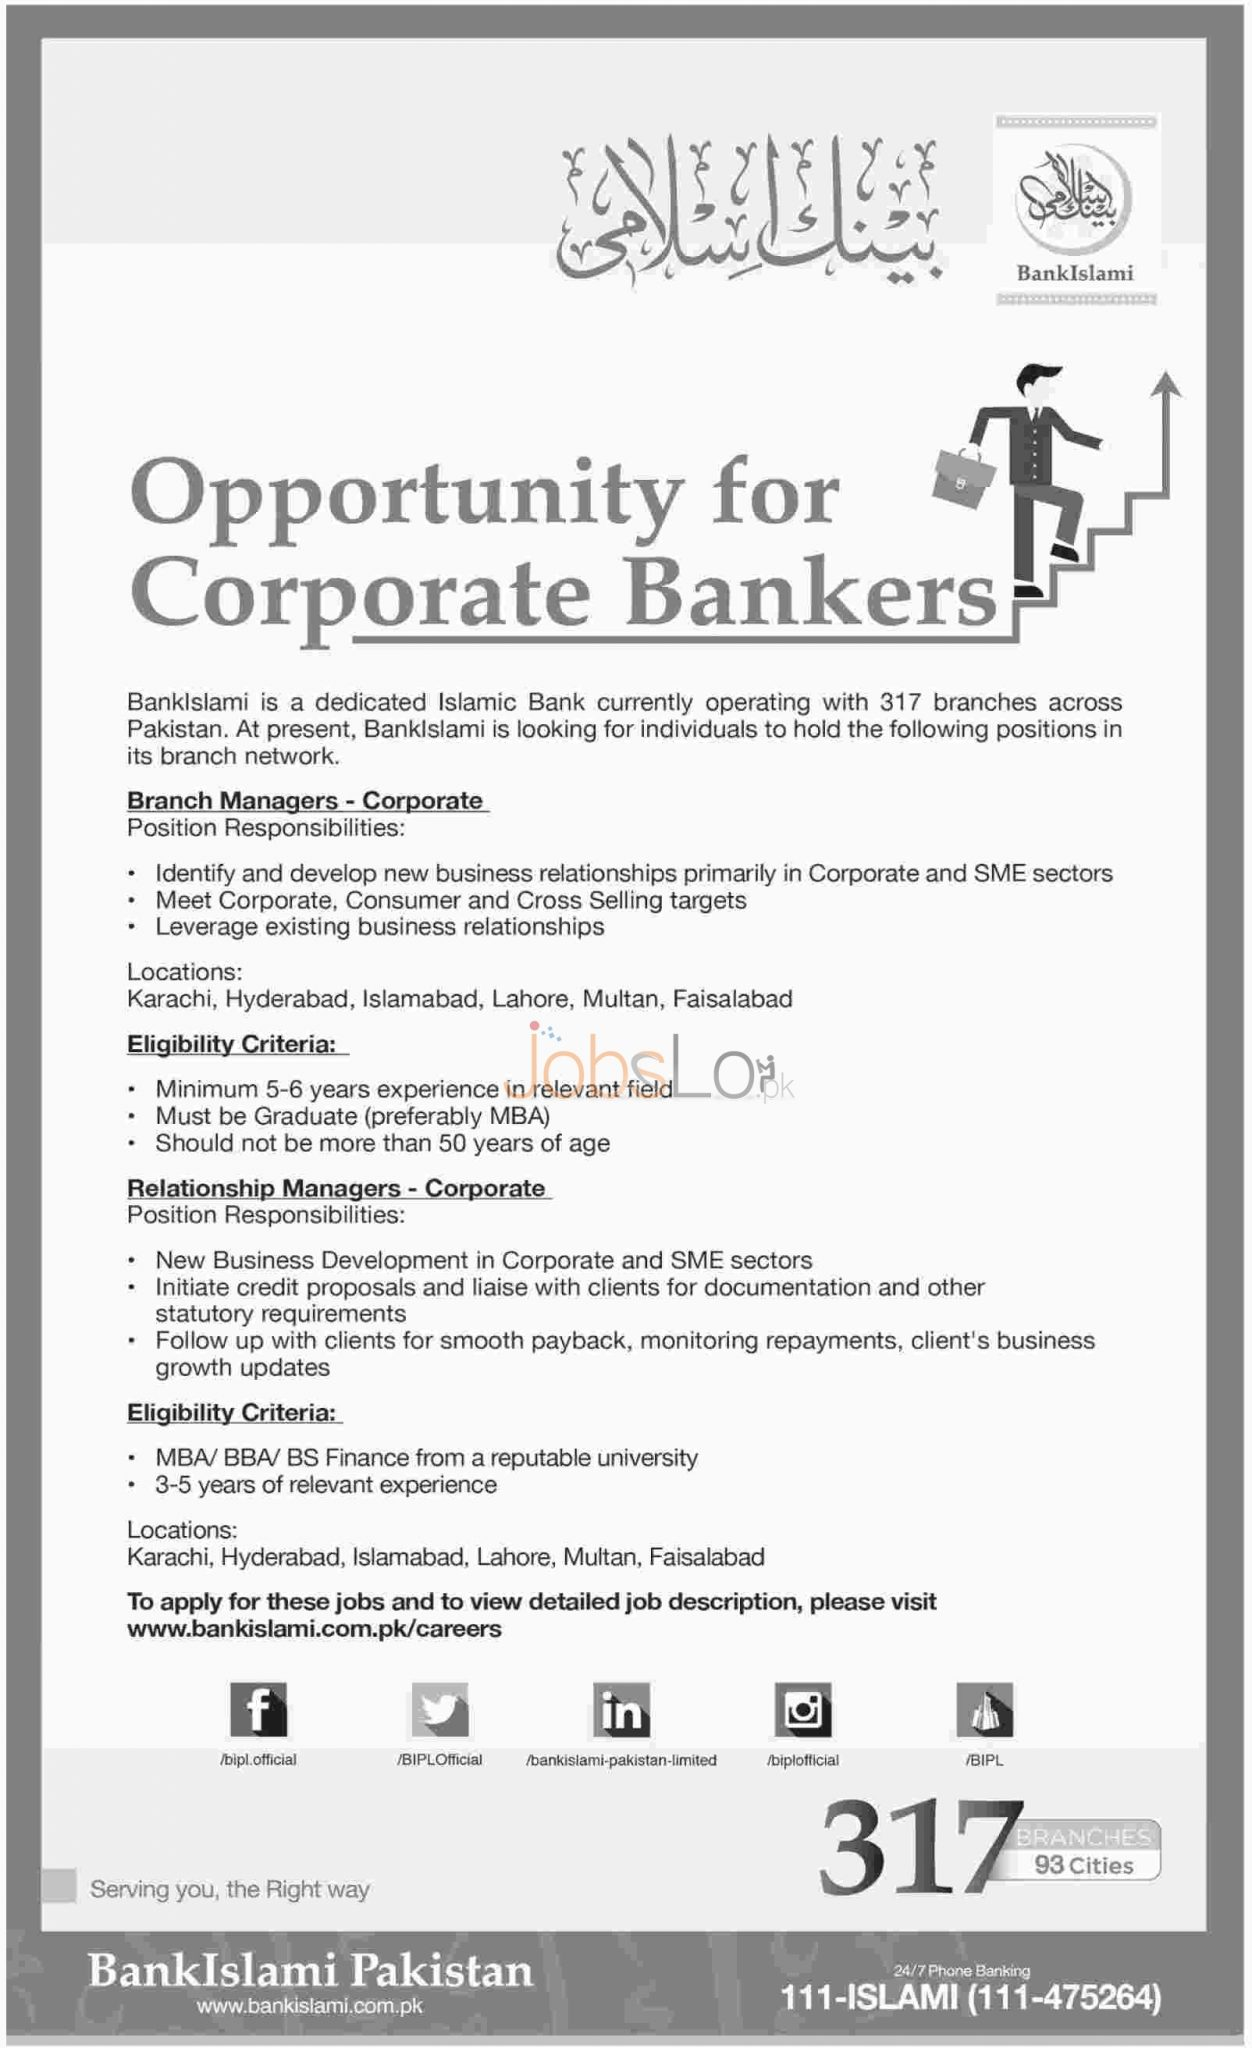 Bank Islami Jobs for Corporate Bankers 2016 in Karachi, Lahore, Islamabad